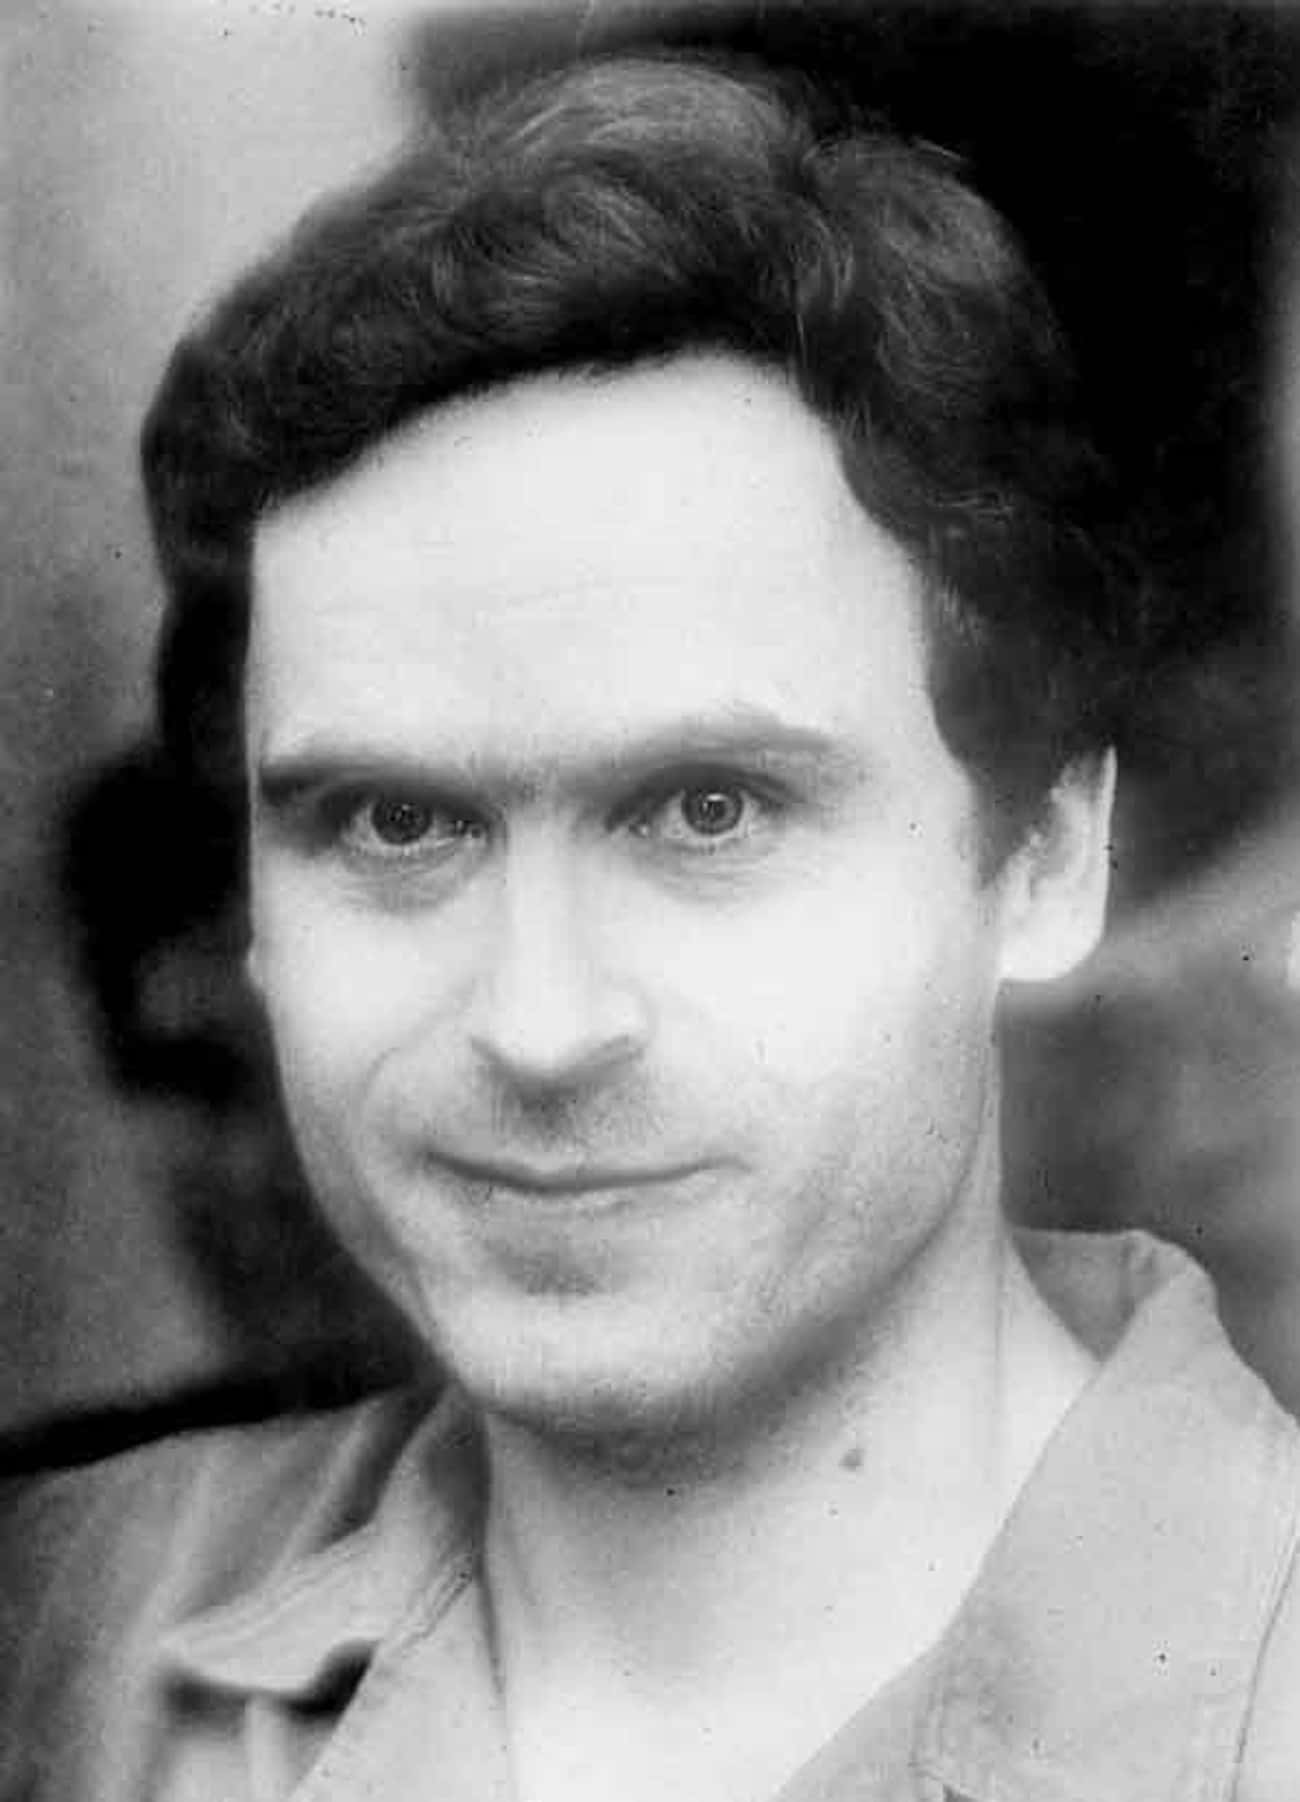 Ted Bundy Bludgeoned and Sexua is listed (or ranked) 1 on the list Horrifying Things Ted Bundy Did To His Victims